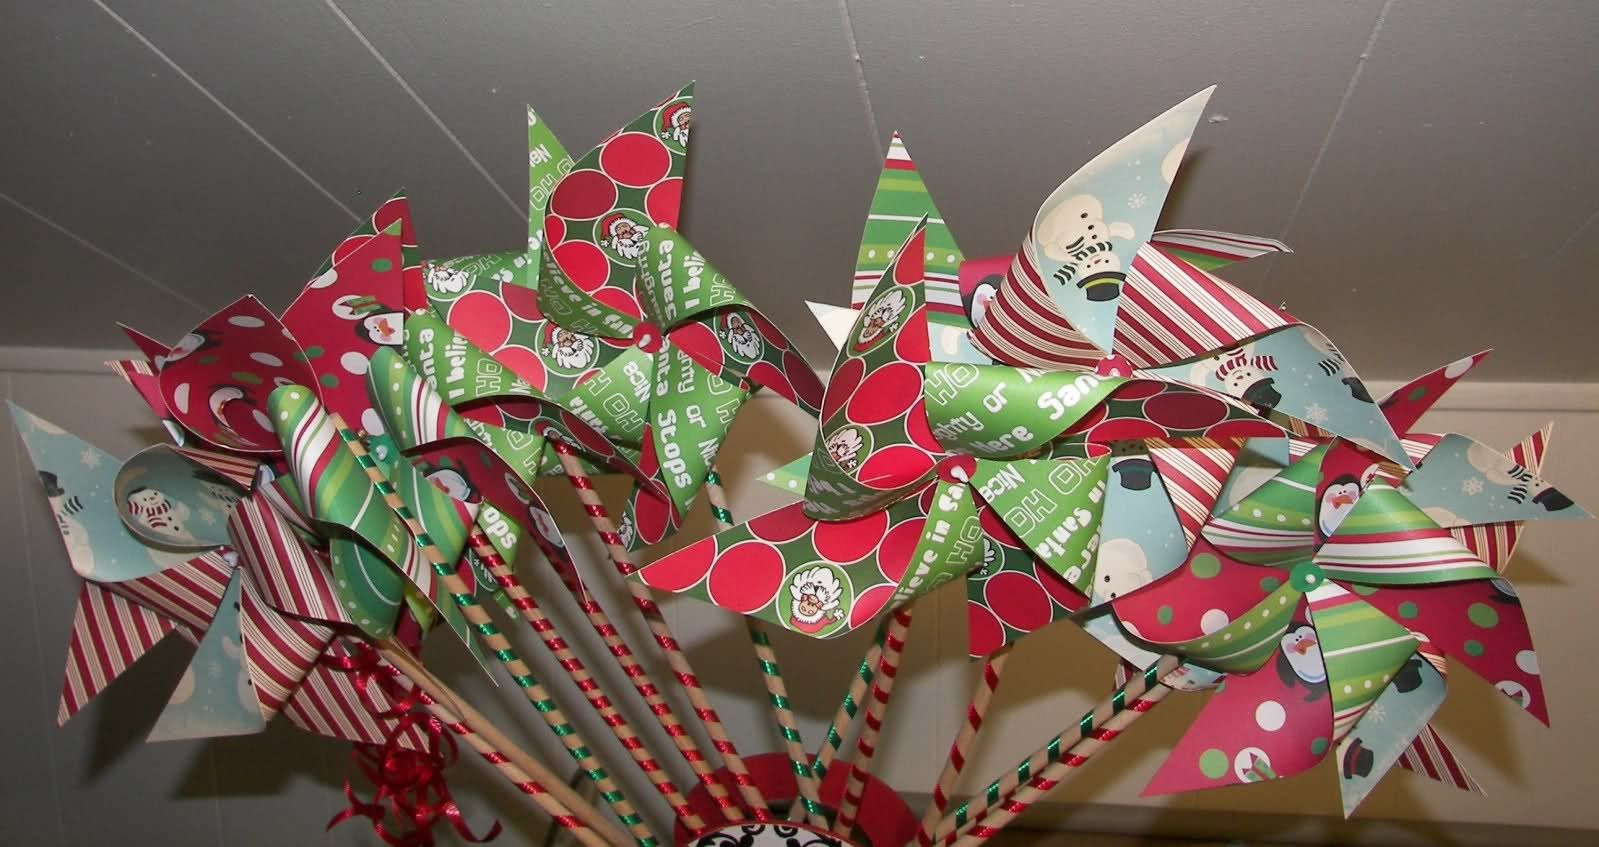 Christmas Crafts To Sell At Craft Fairs.Christmas Crafts To Sell At Craft Fairs Cute Ideas To Make